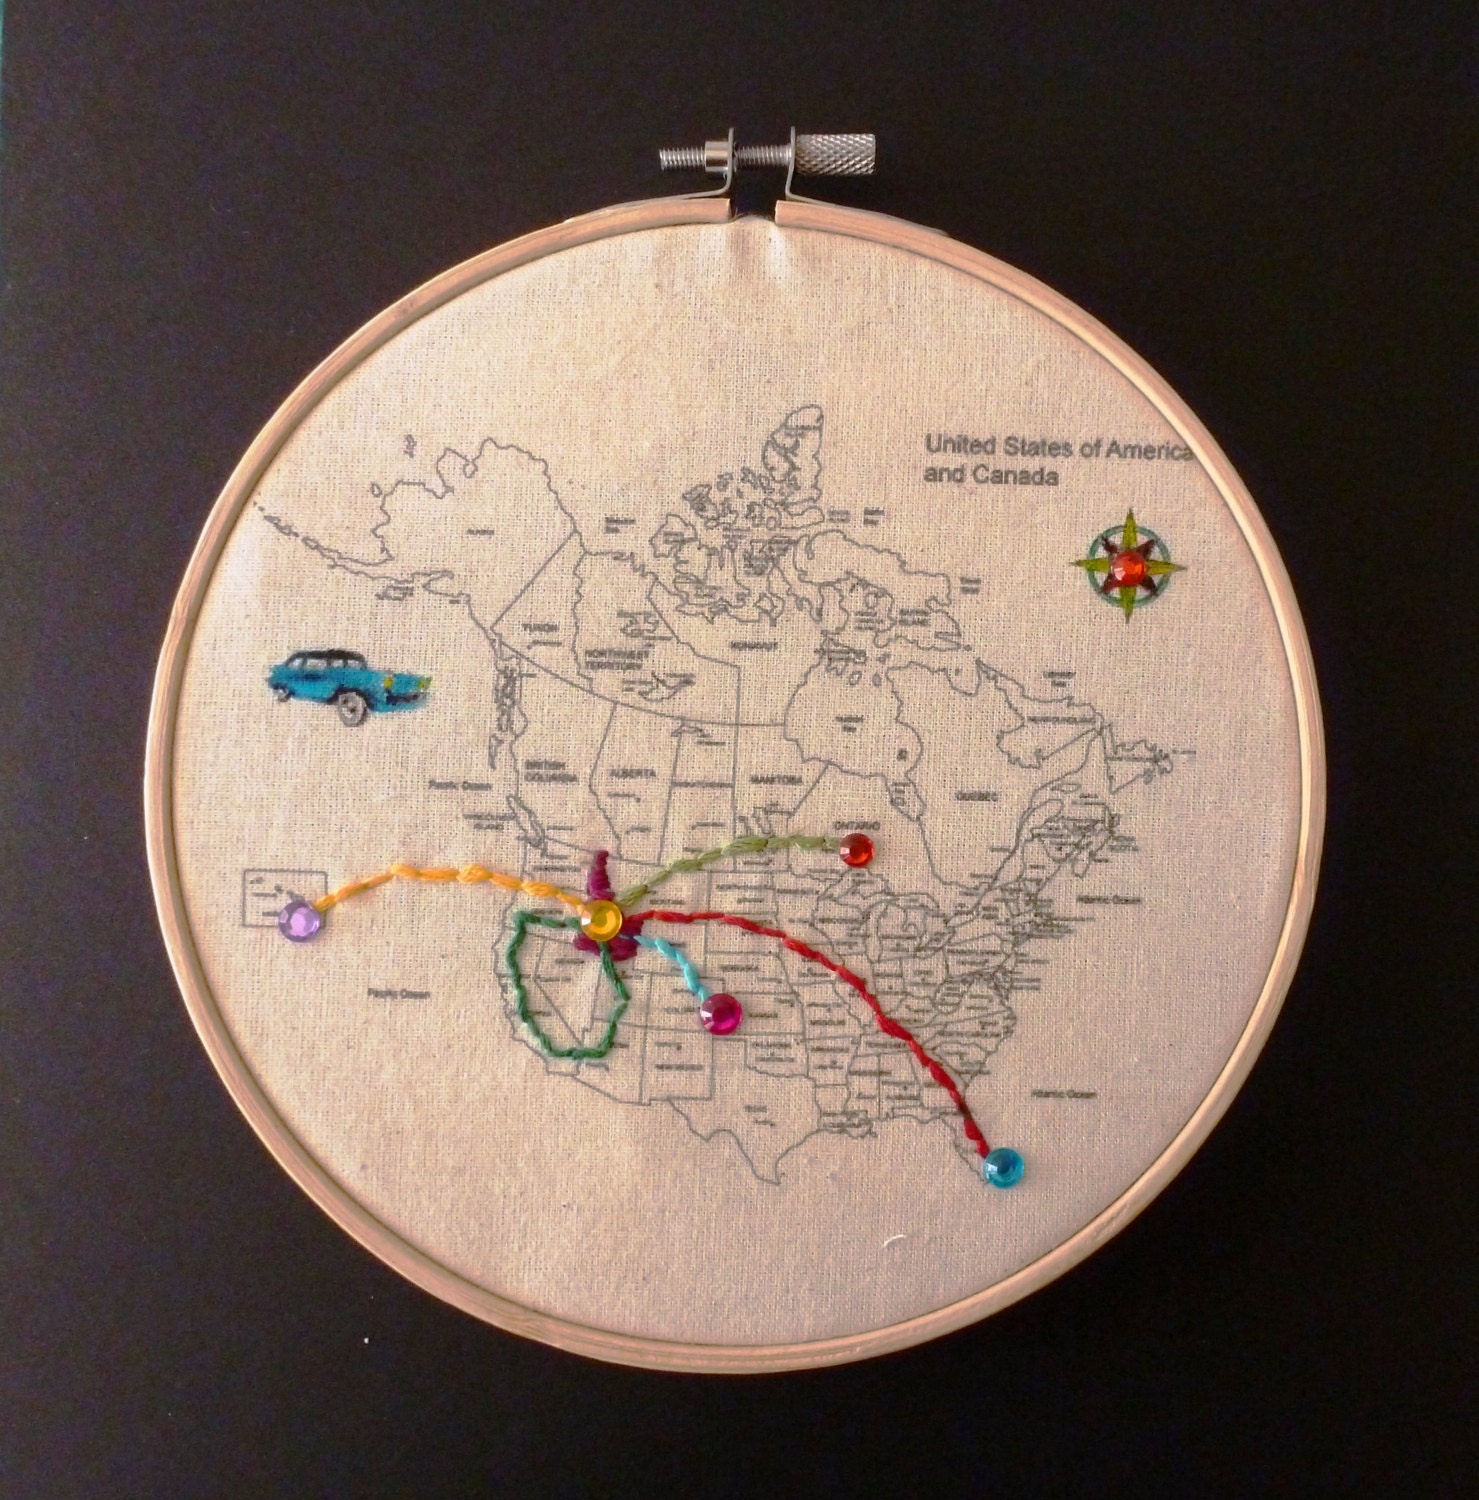 Embroidery Kit Hoop Art USA Amp Canada Map Fabric Map To Sew